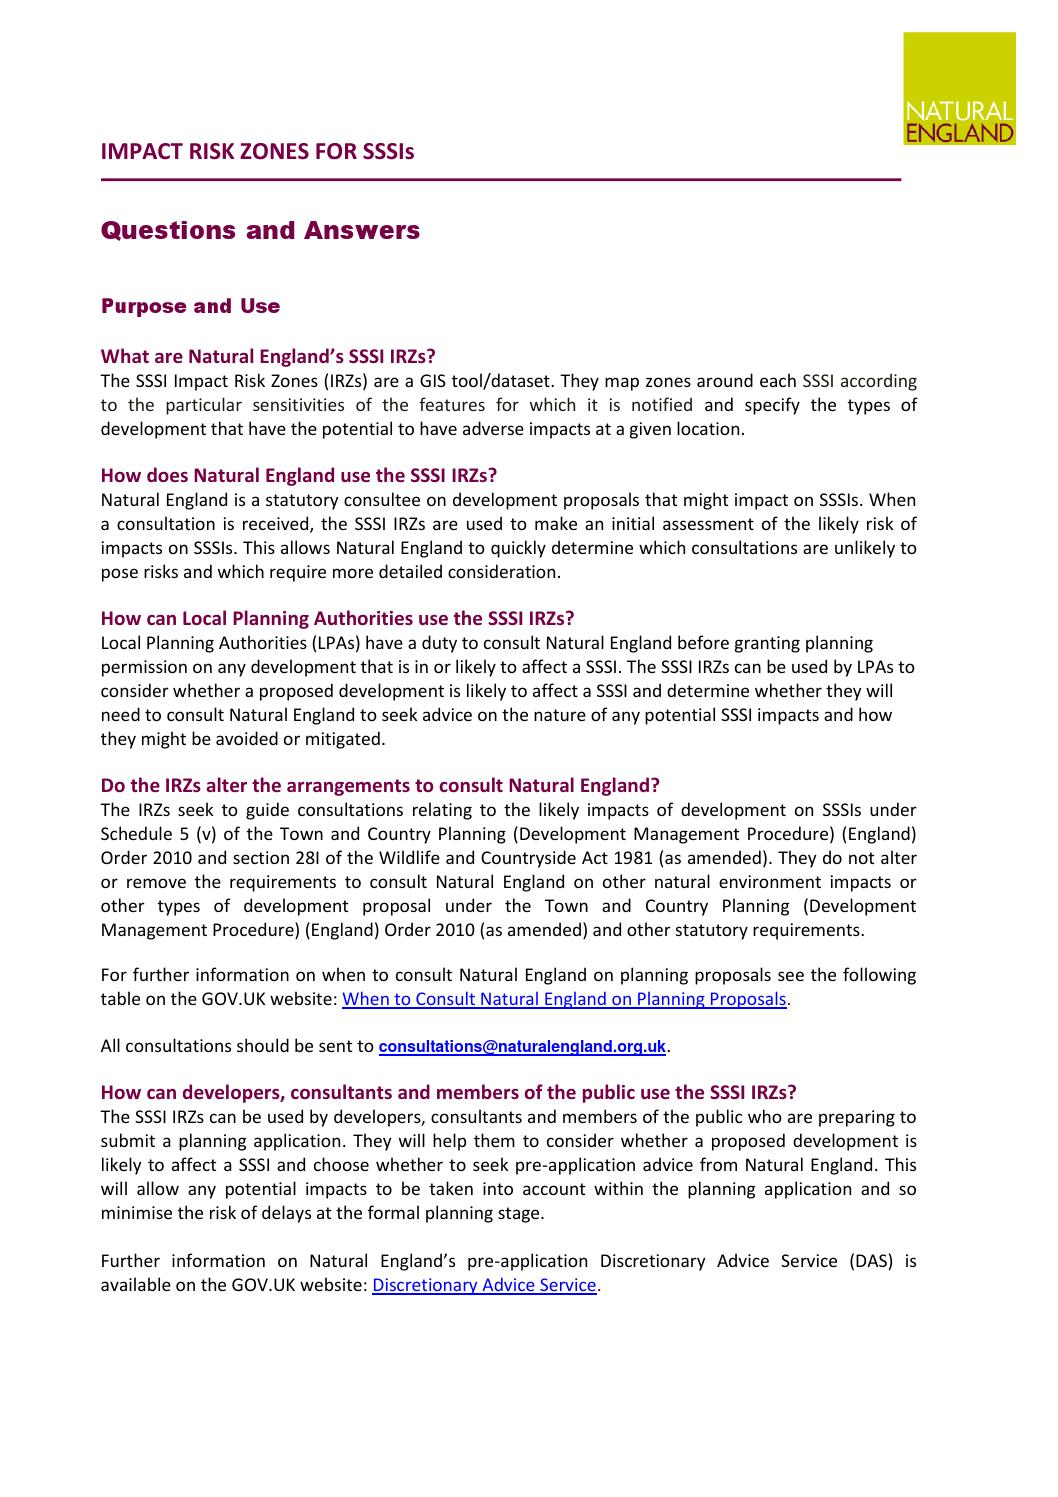 More On Adverse Developmental Impacts >> Impact Risk Zones For Sssis Questions And Answers By Suffolk